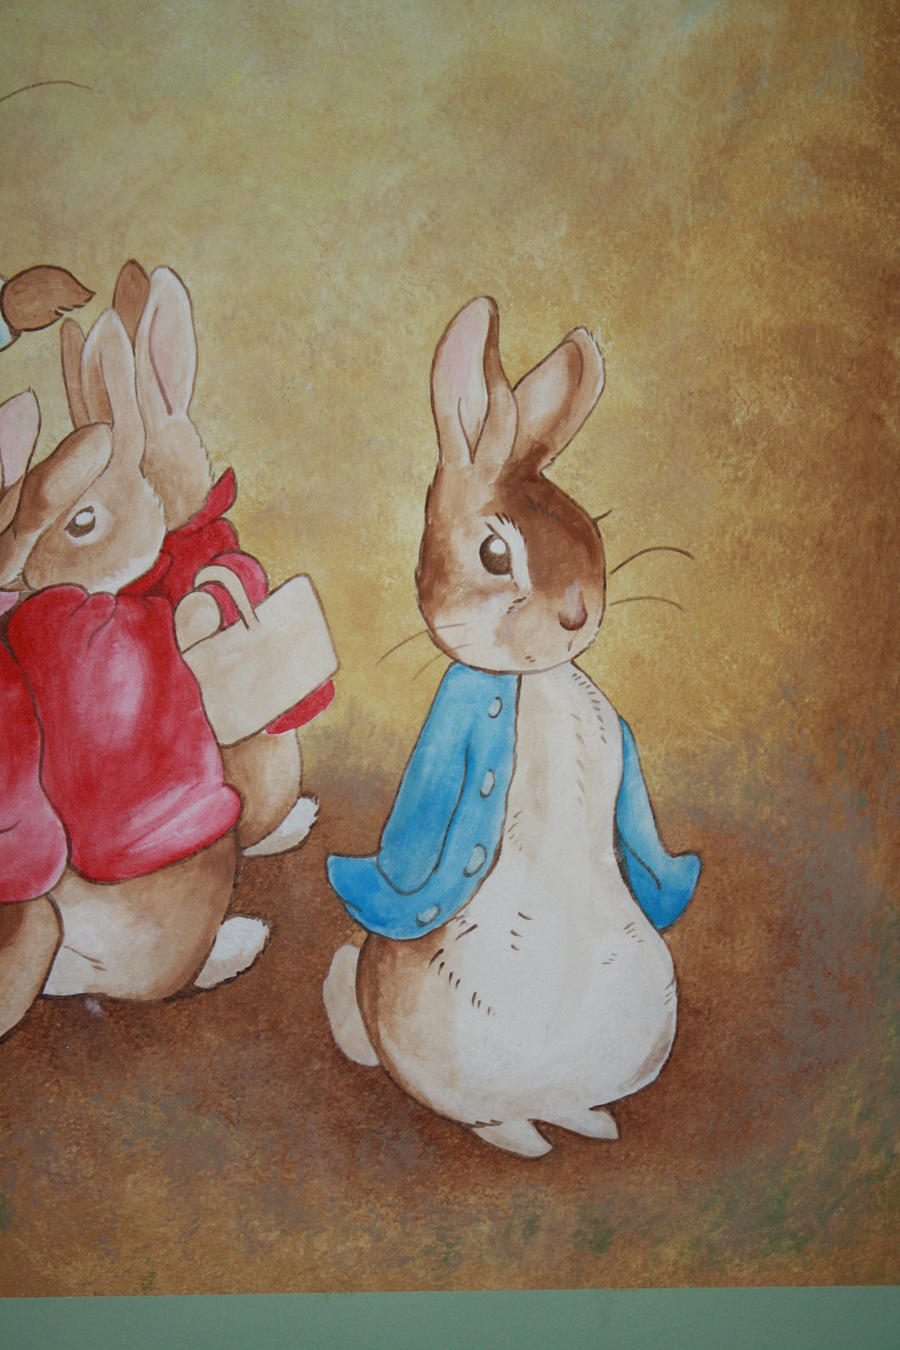 Beatrix potter mural peter by anvikit on deviantart for Beatrix potter mural wallpaper